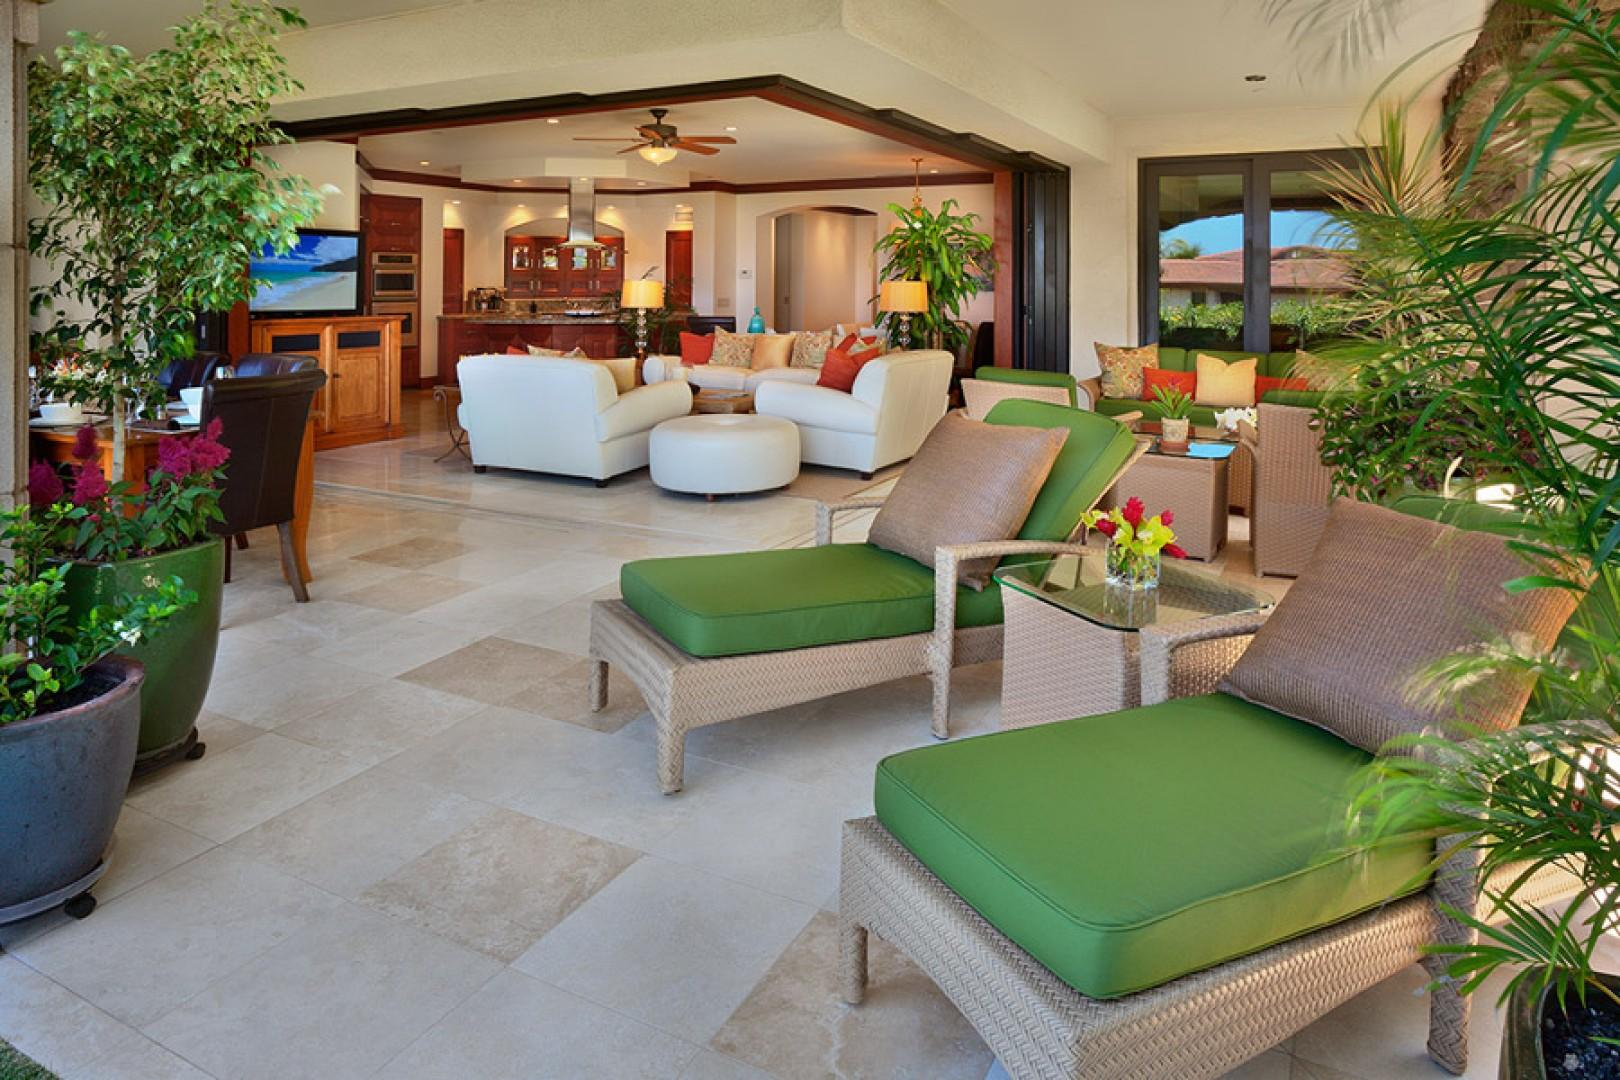 Outdoor lounging area.